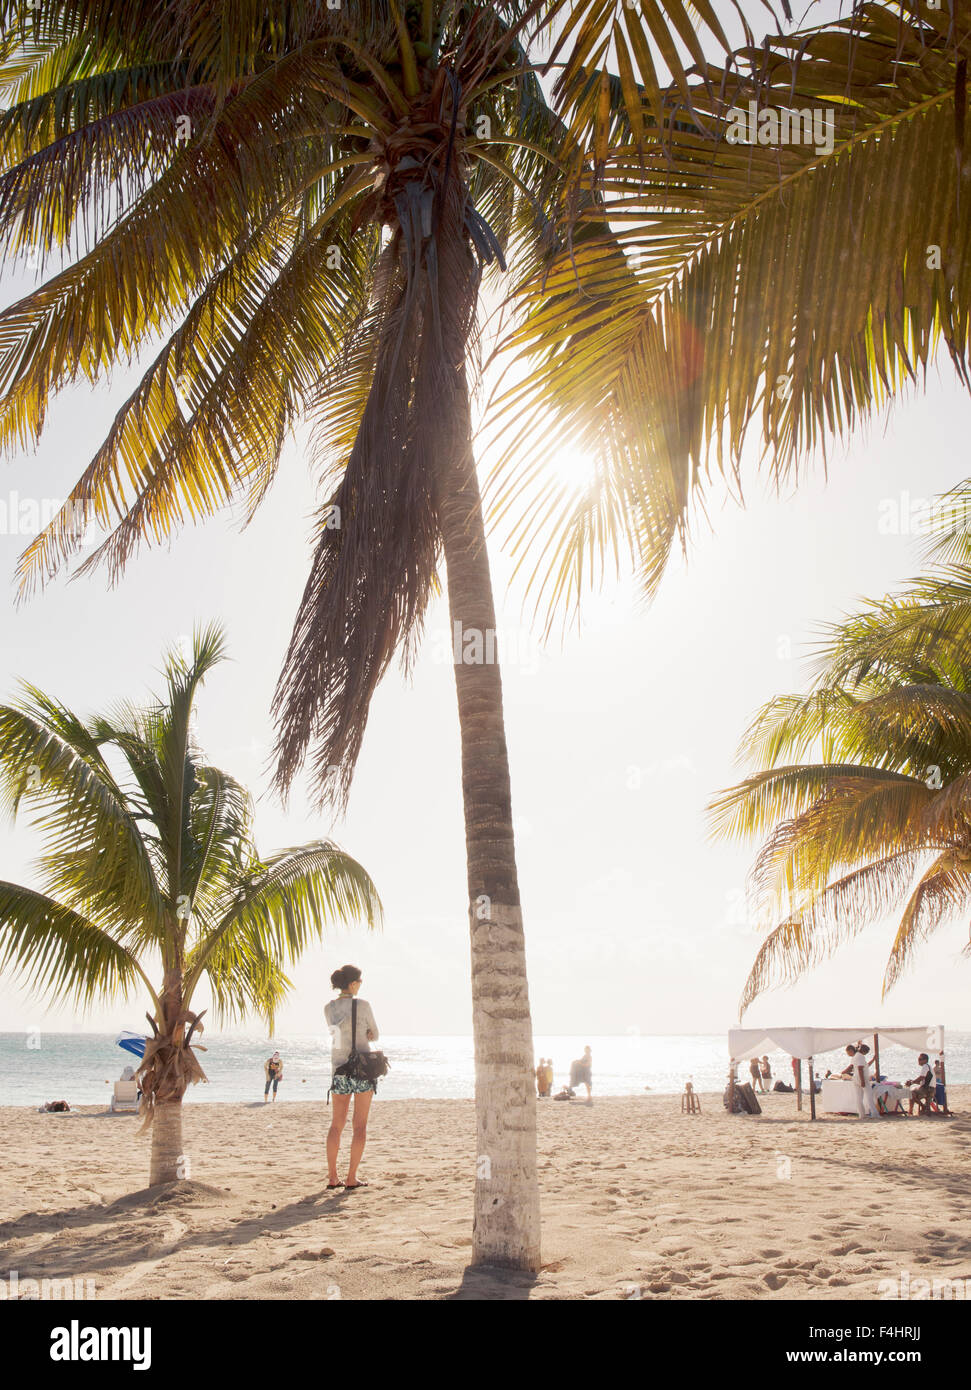 The main beach on Isla Mujeres, an island off Cancun, in Quintana Roo, Mexico. - Stock Image